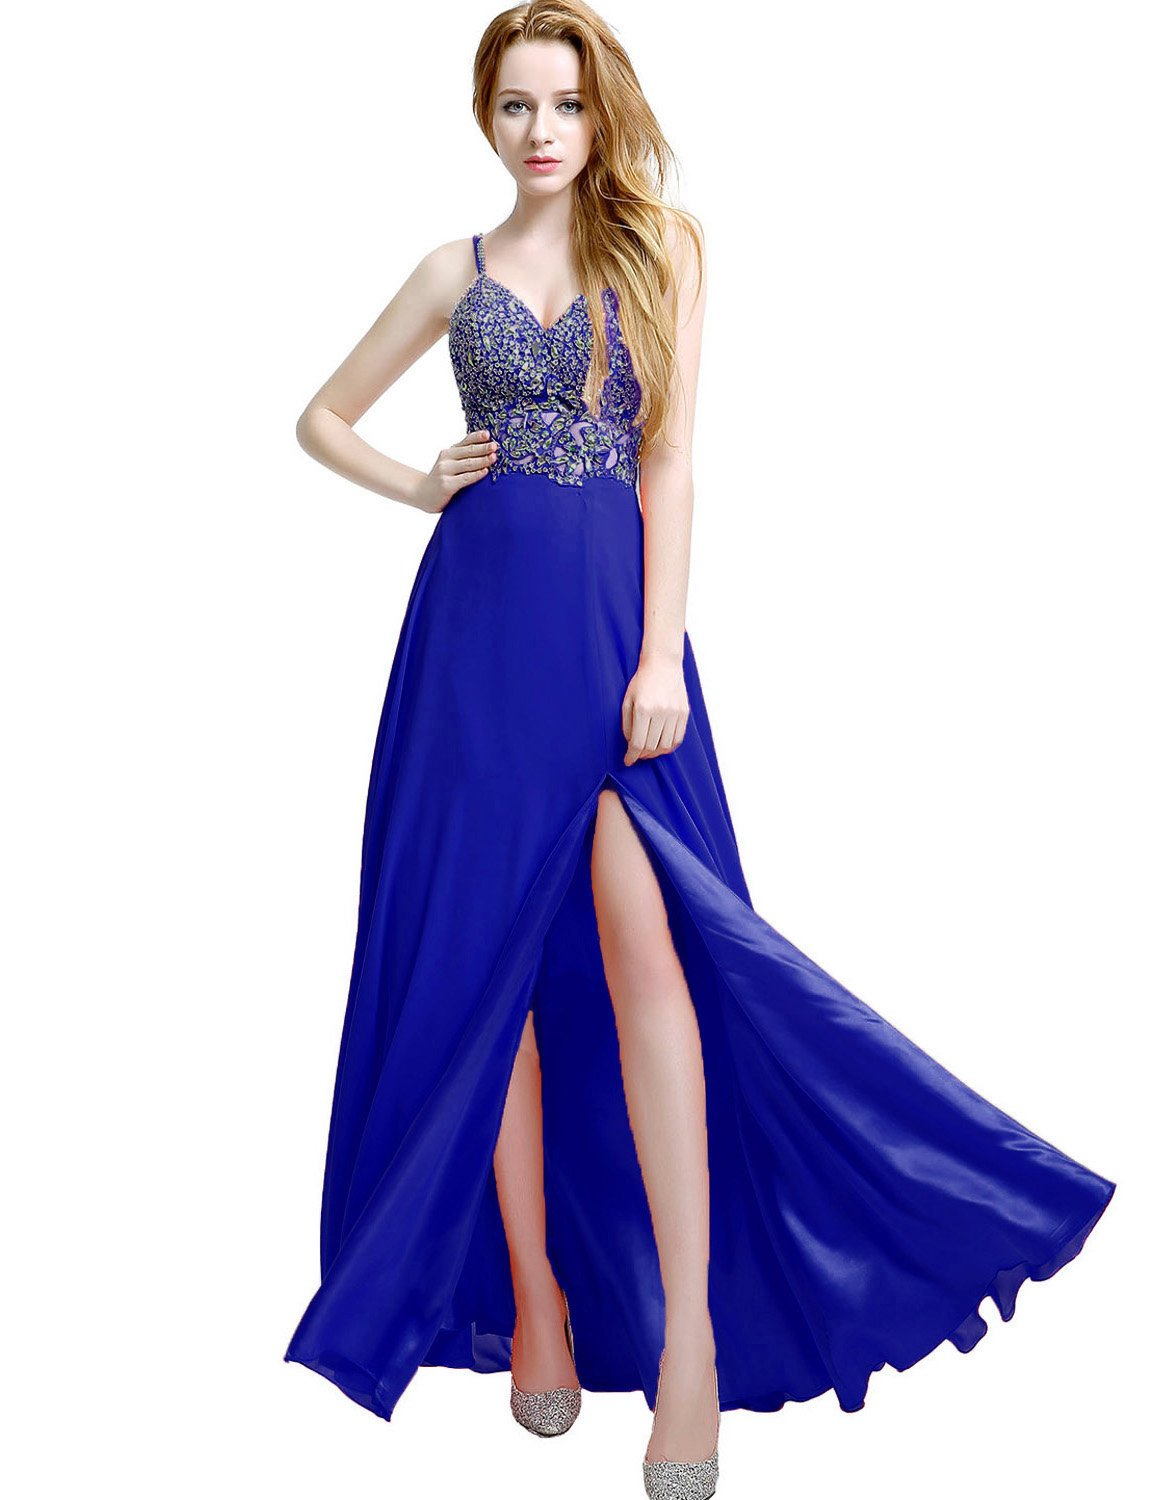 Sarahbridal Womens A Ling Chiffon Prom Dresses Long Beaded Bridesmaid Ball Gowns SD011